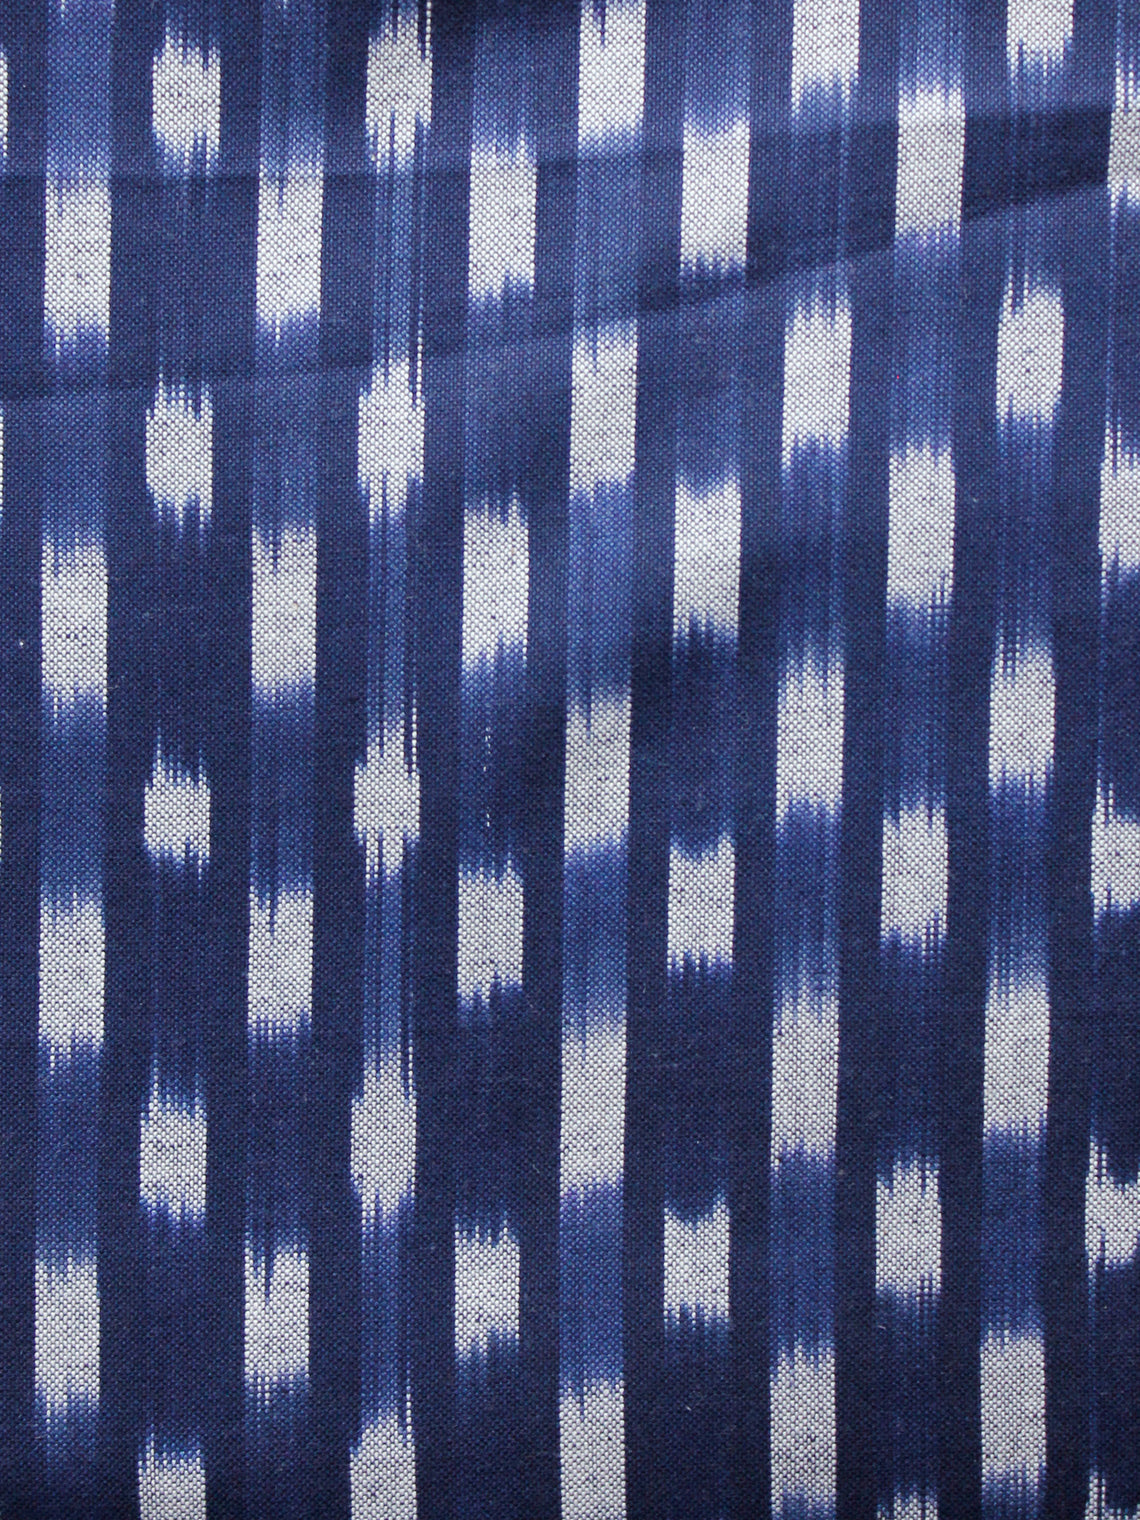 Blue Grey Hand Woven Double Ikat Handloom Cotton Fabric Per Meter - F002F1573